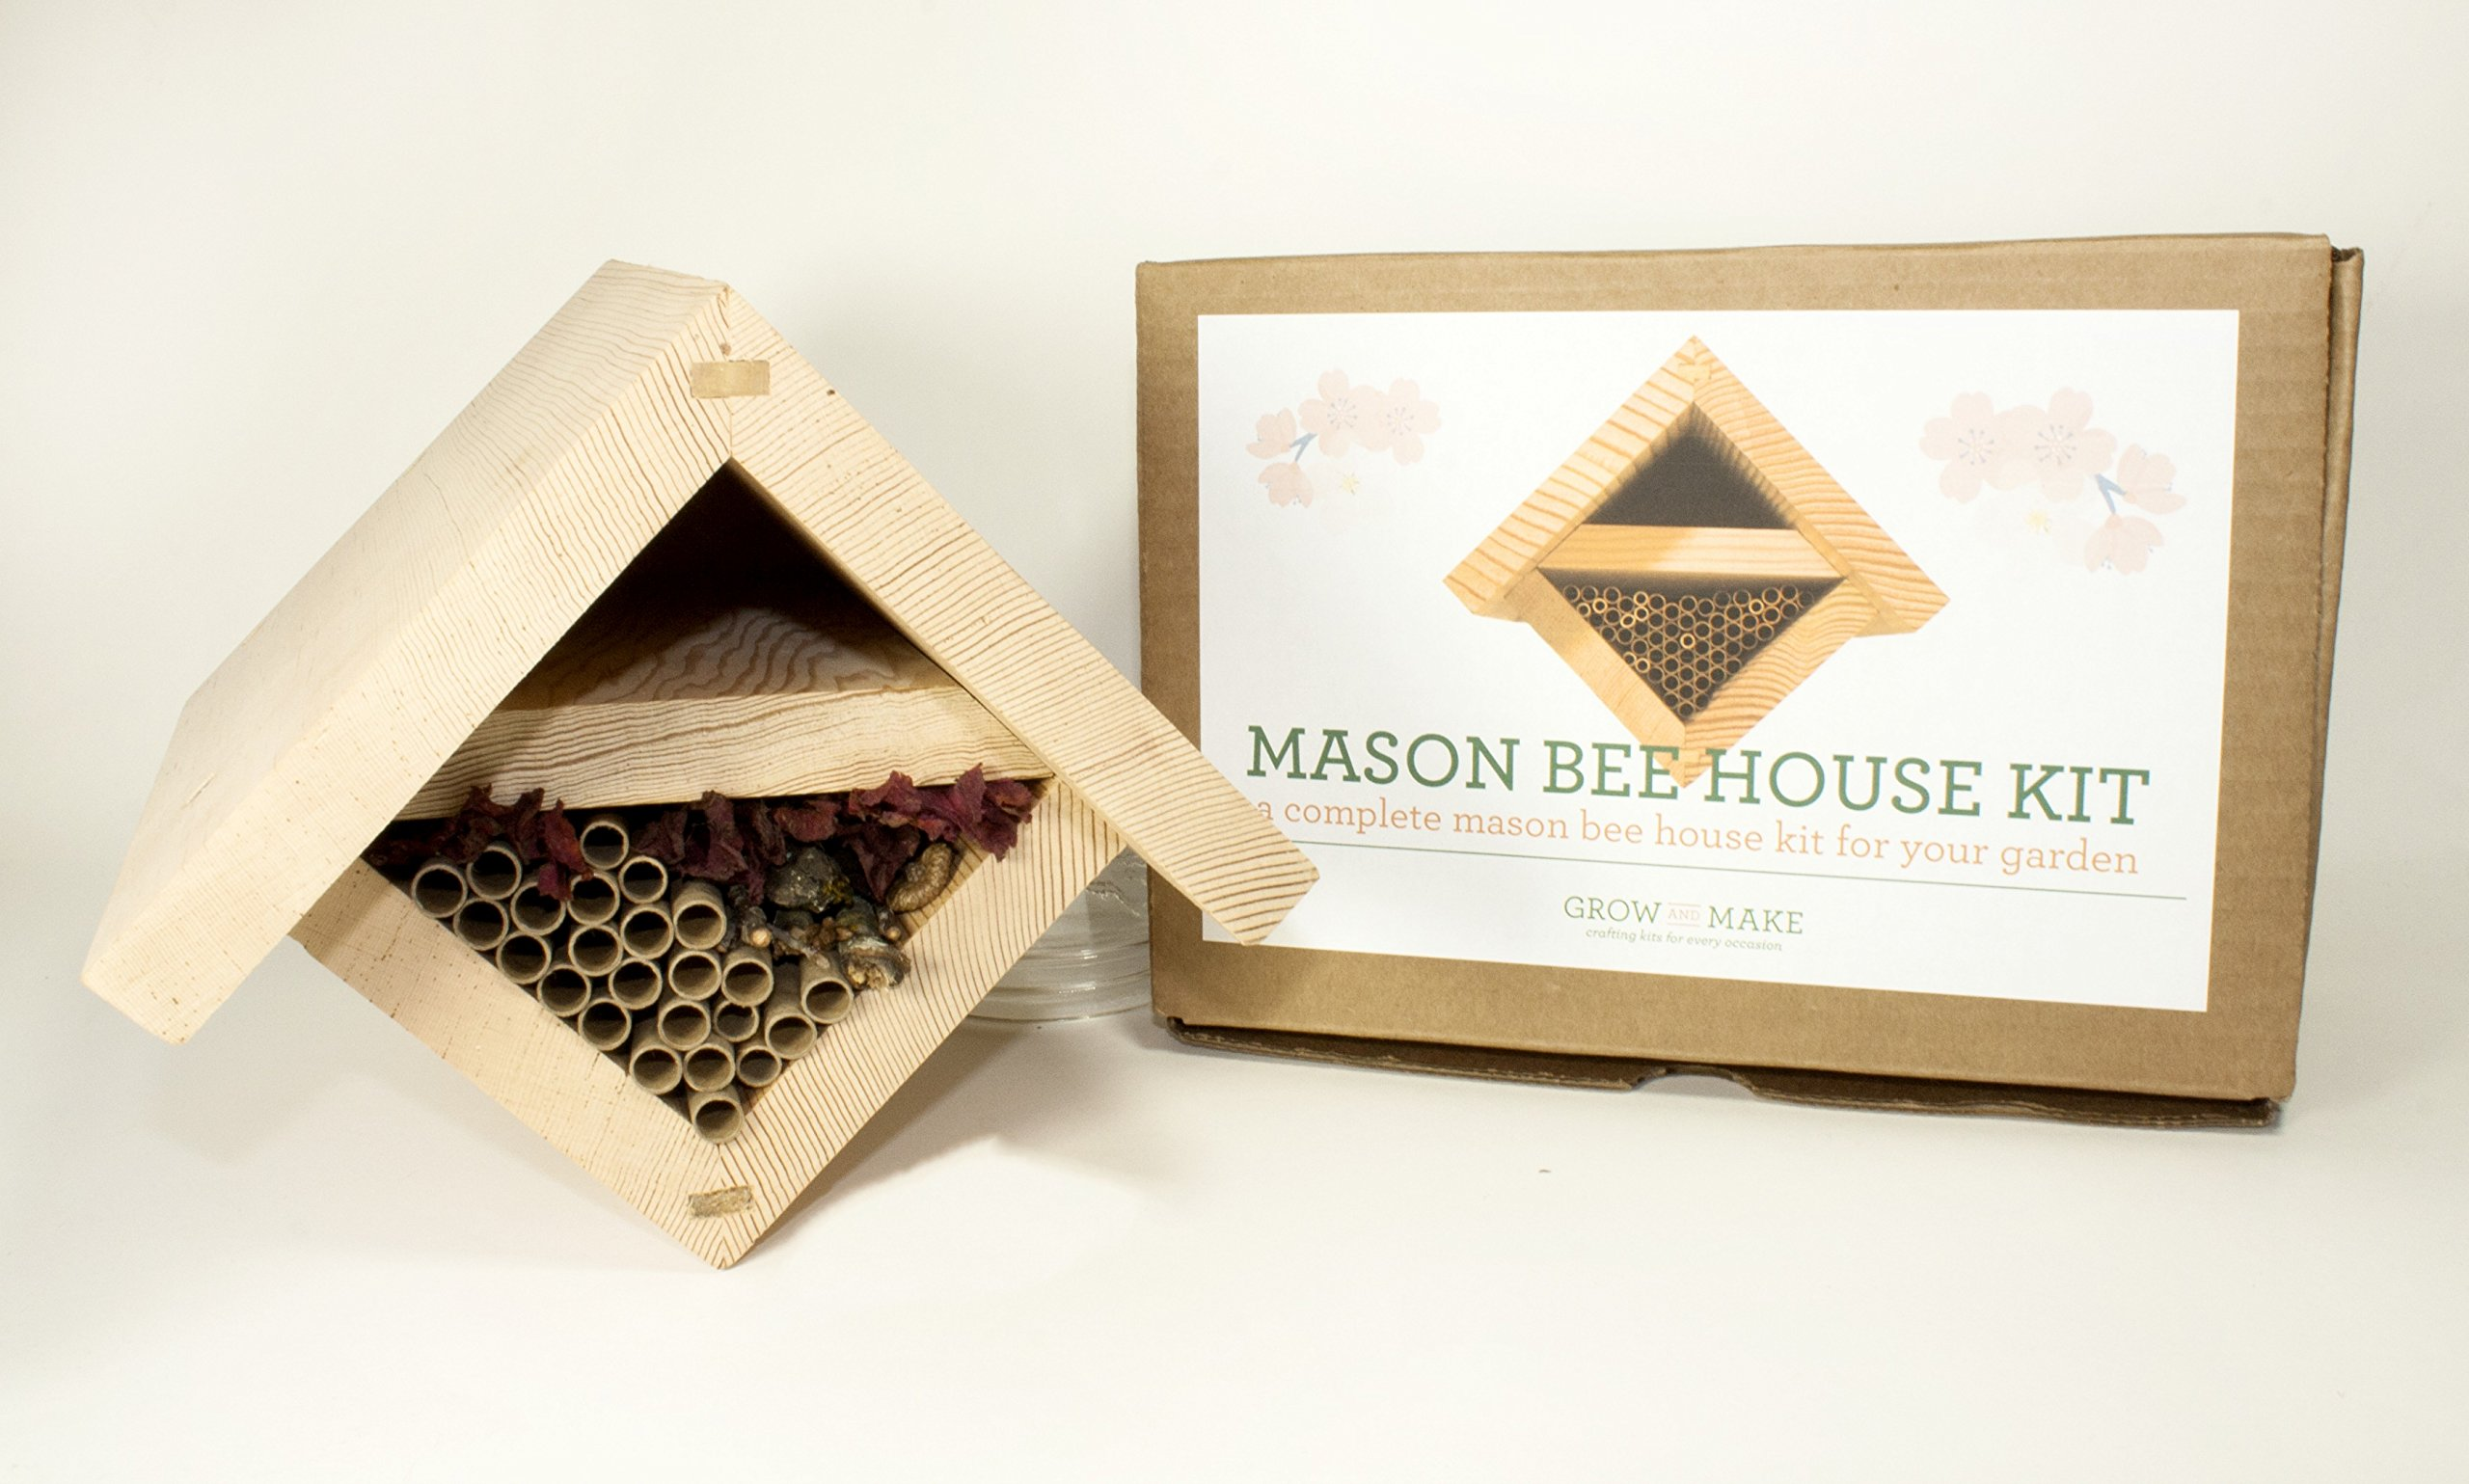 Grow and Make DIY Mason Bee House Hive Kit with 24 Mason bee Tubes - Help Attract Native pollinators to Your Garden! by Grow and Make